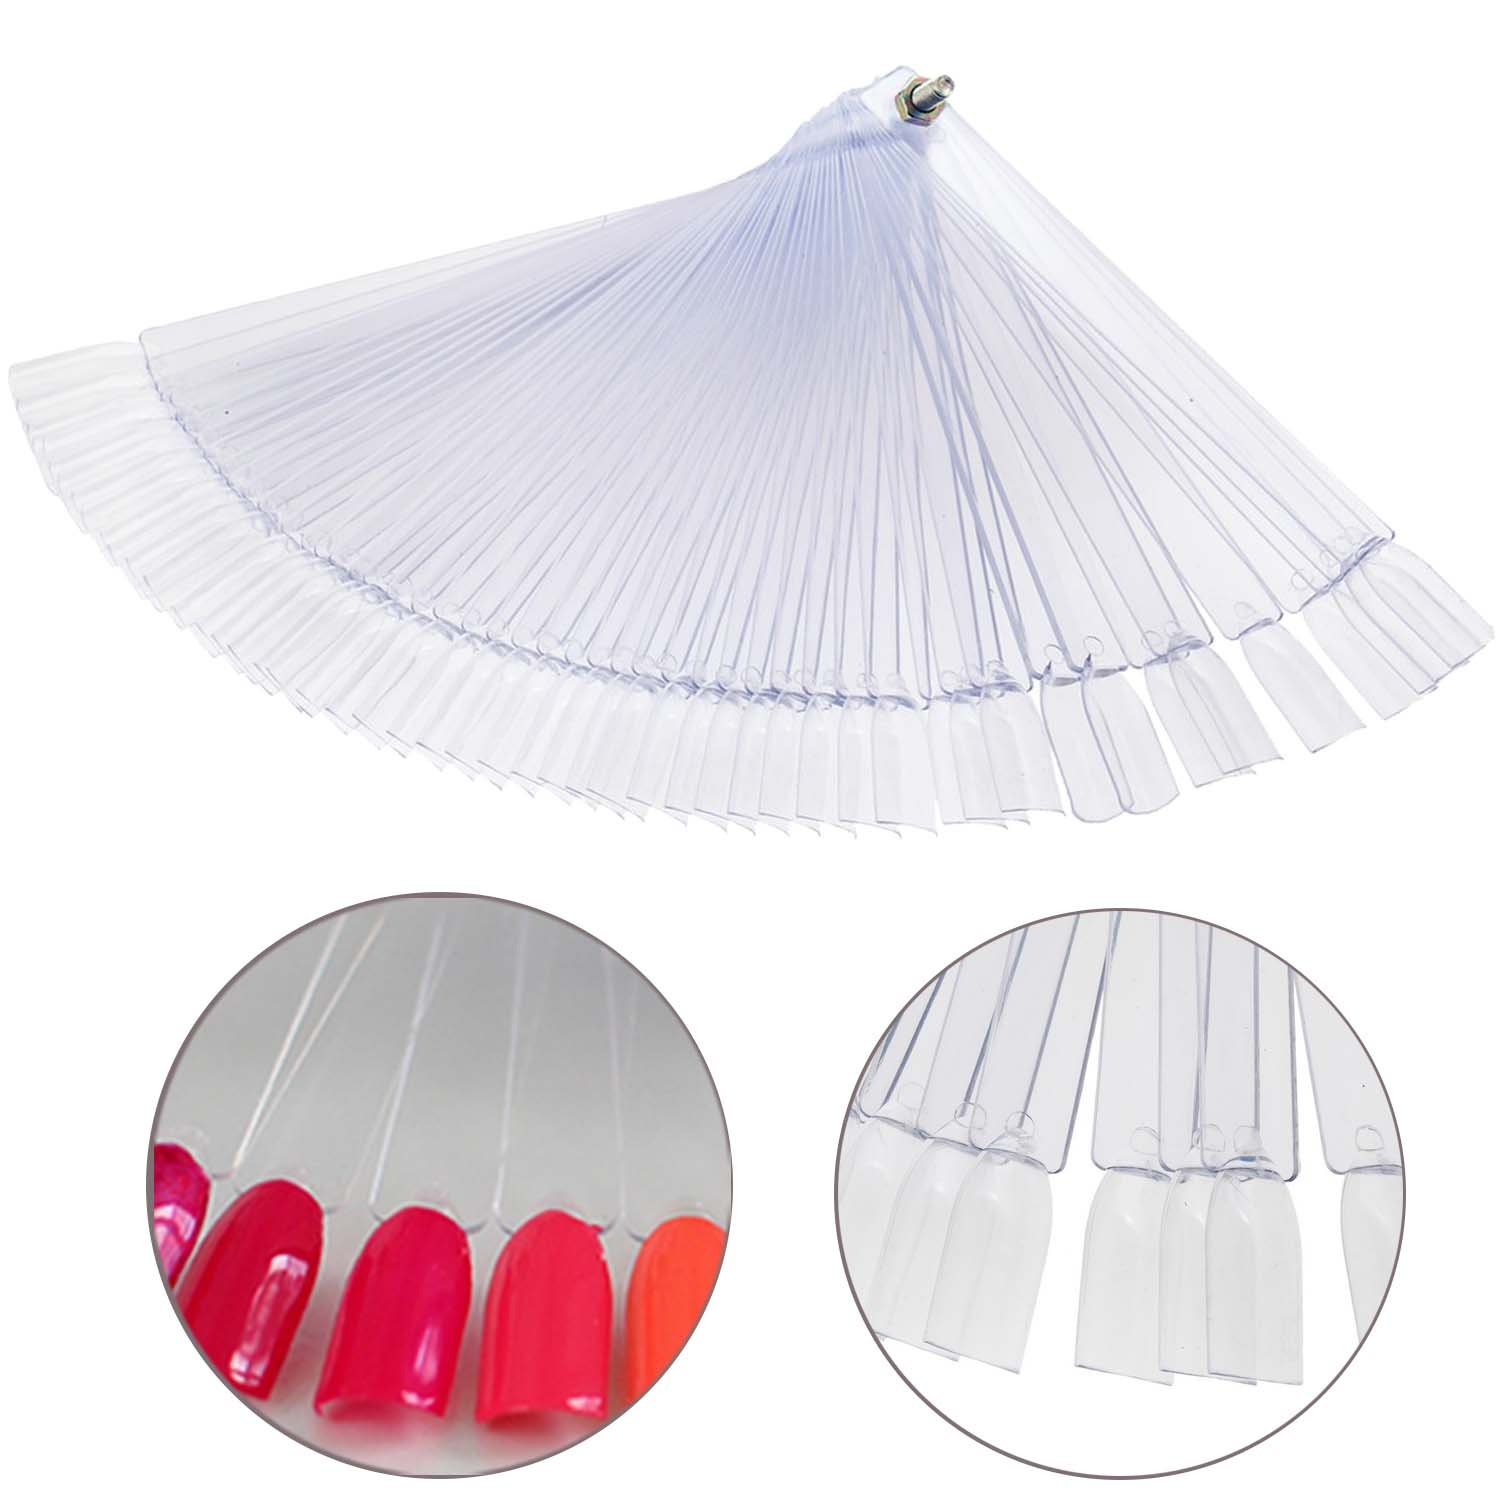 Fan With 50 High Quality Clear Transparent False Nails / Nail Art Tips For Designs Display And Practice By VAGA